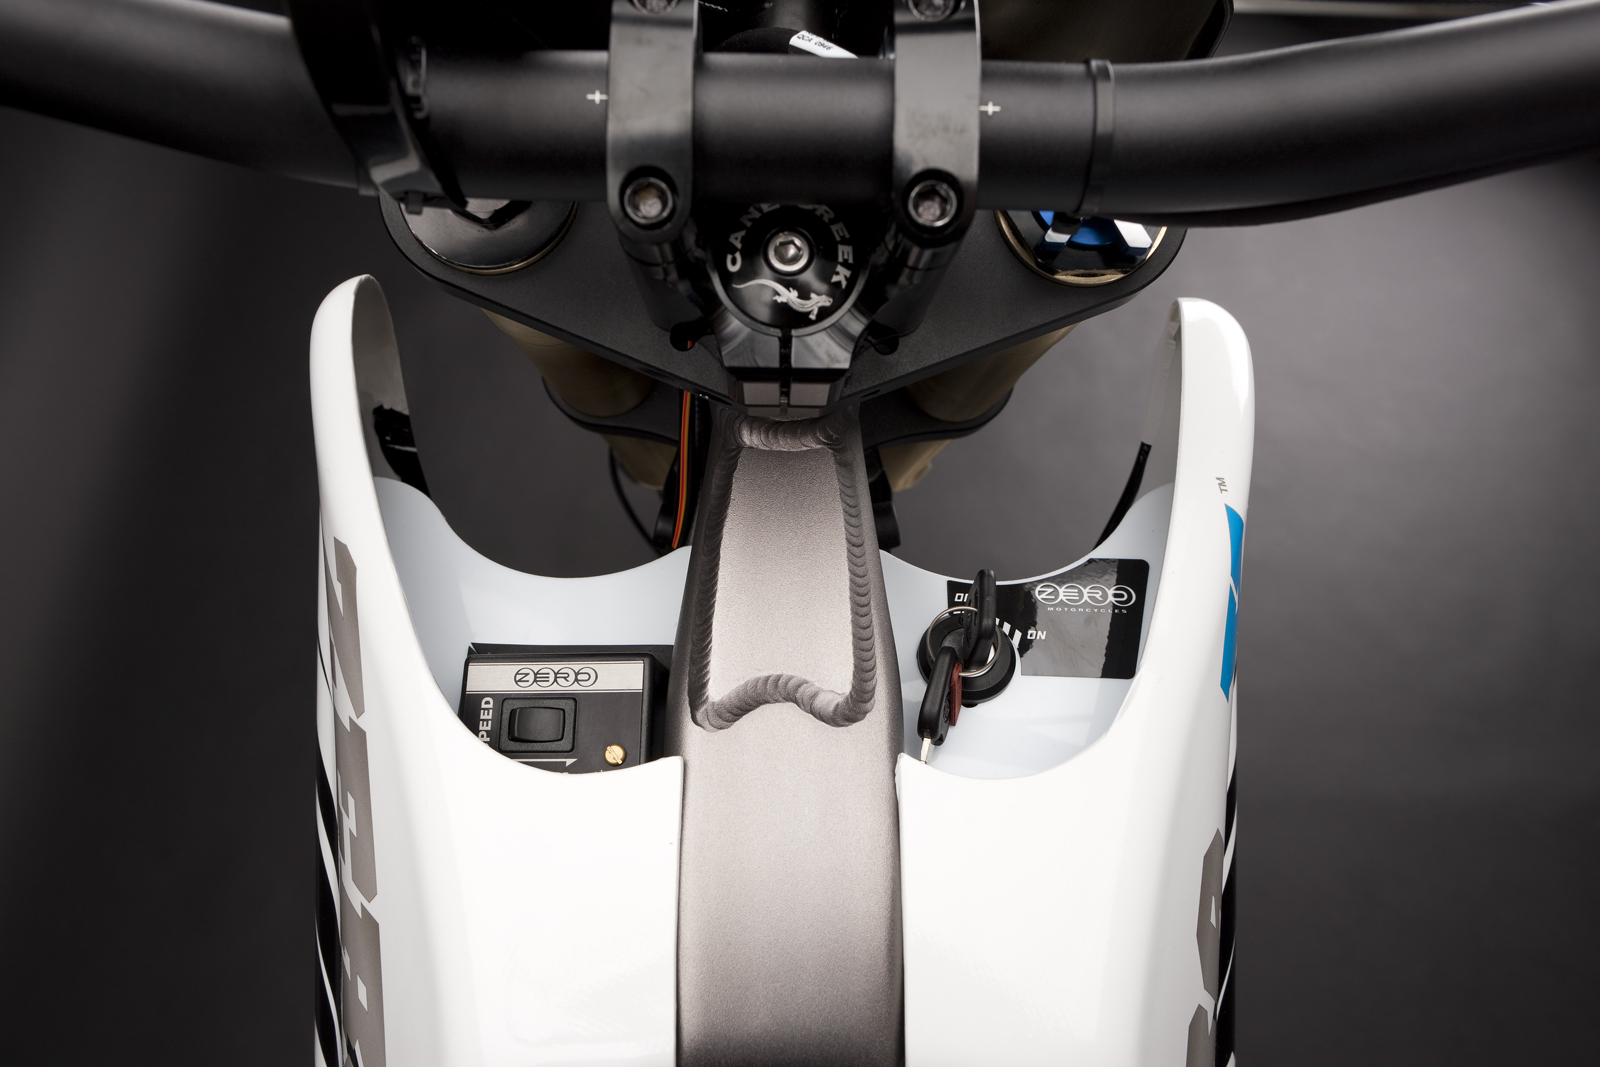 2010 Zero X Electric Motorcycle: Ignition